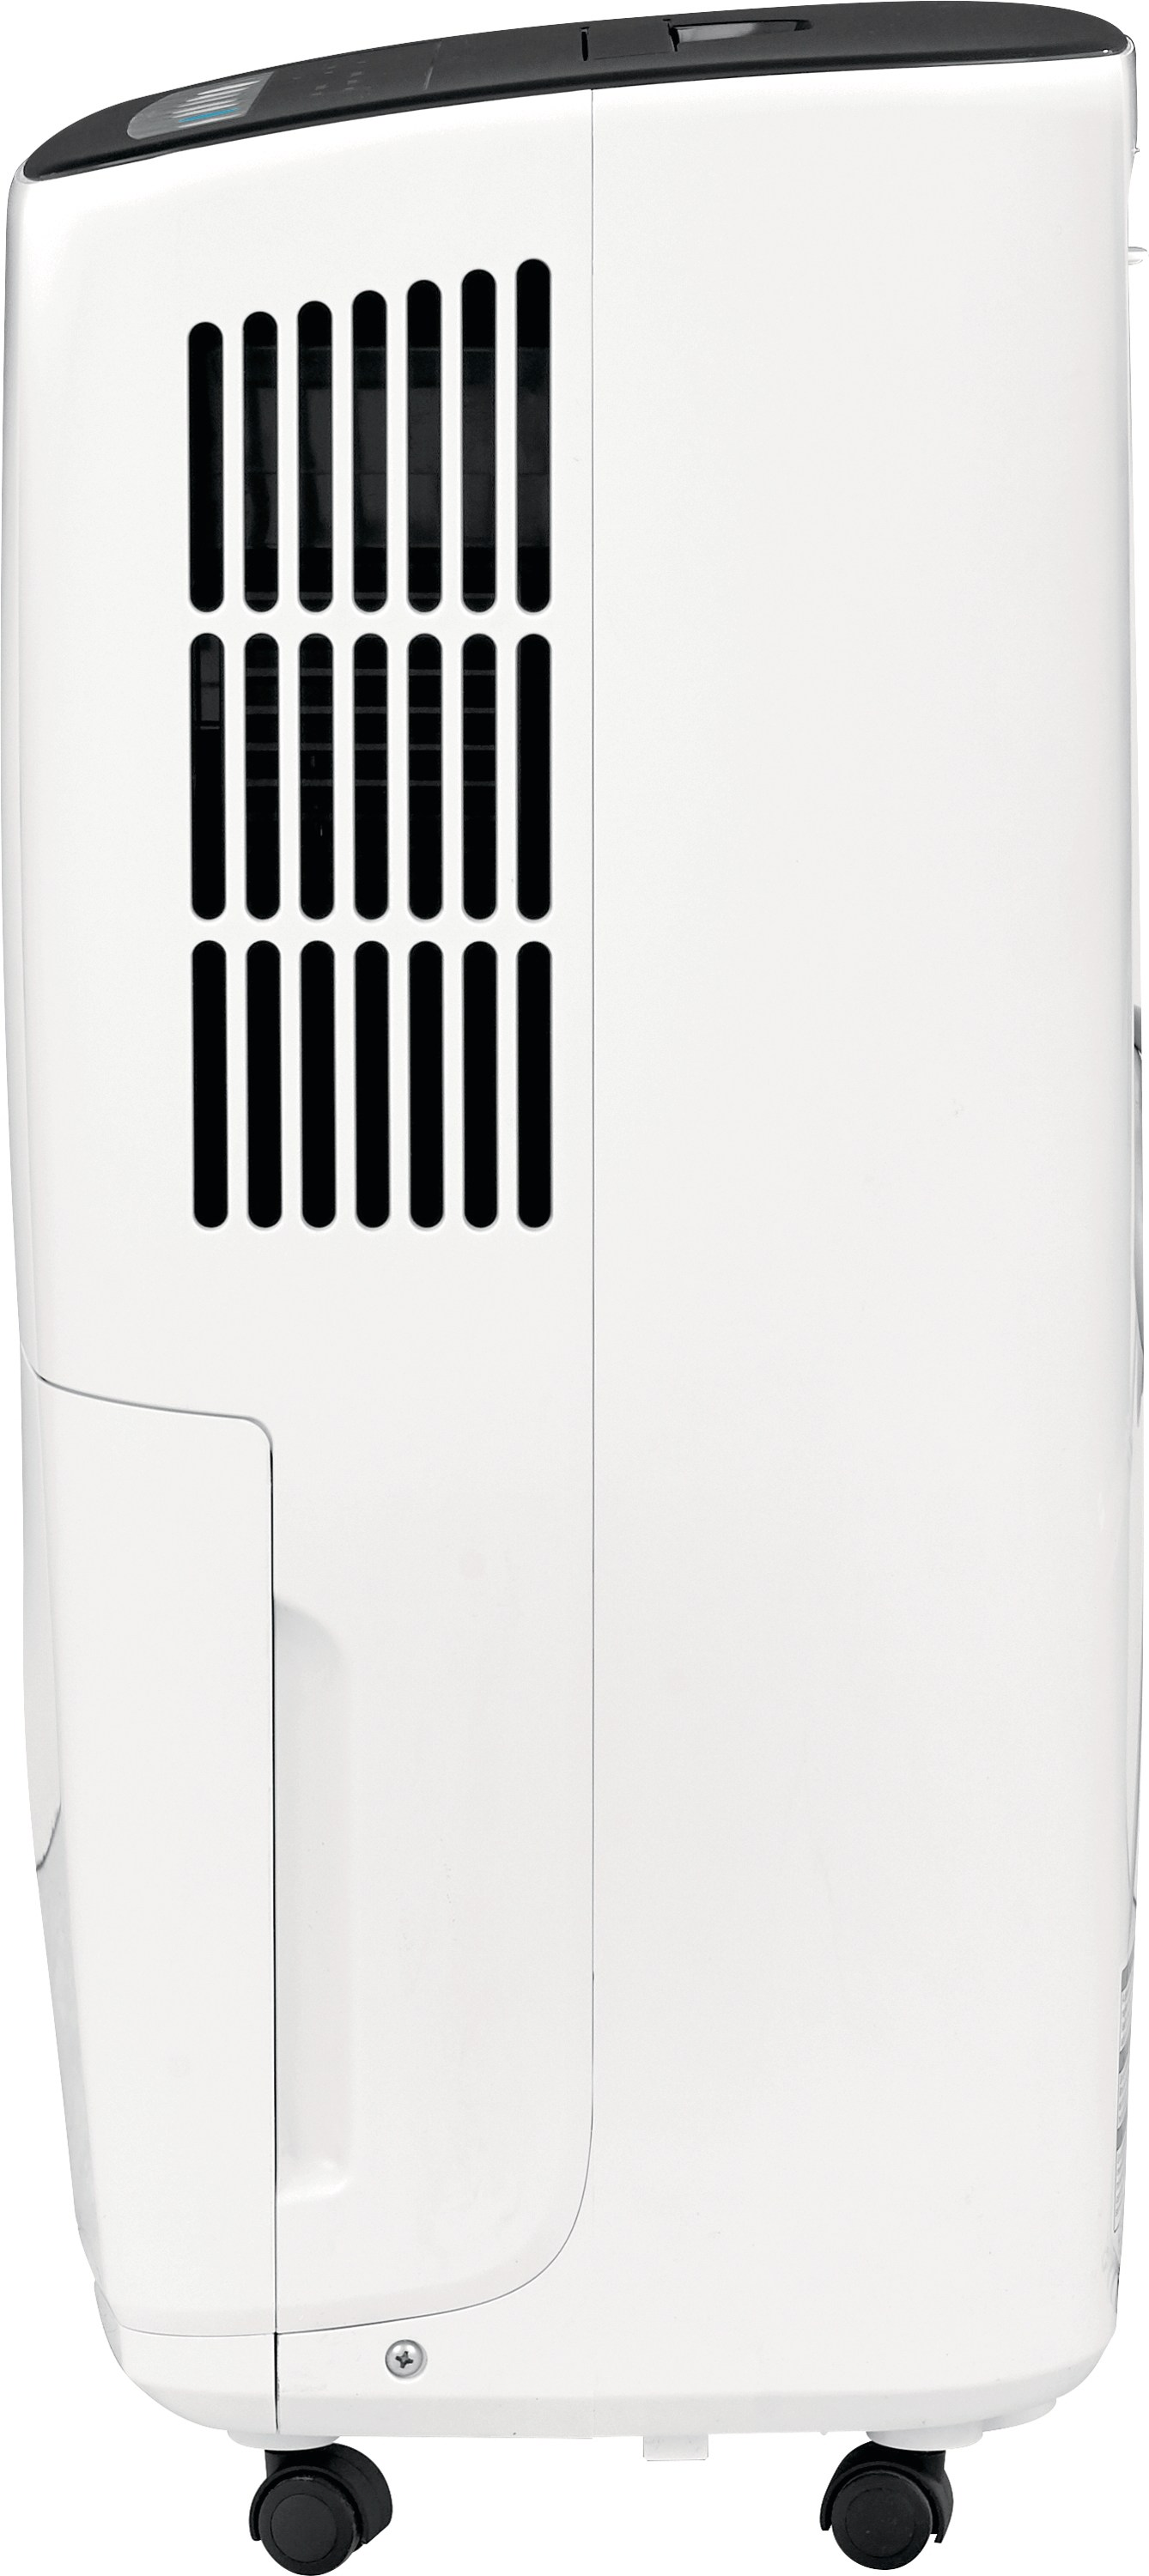 Model: FFAP7033T1 | Large Room 70 Pint Capacity Dehumidifier with Pump